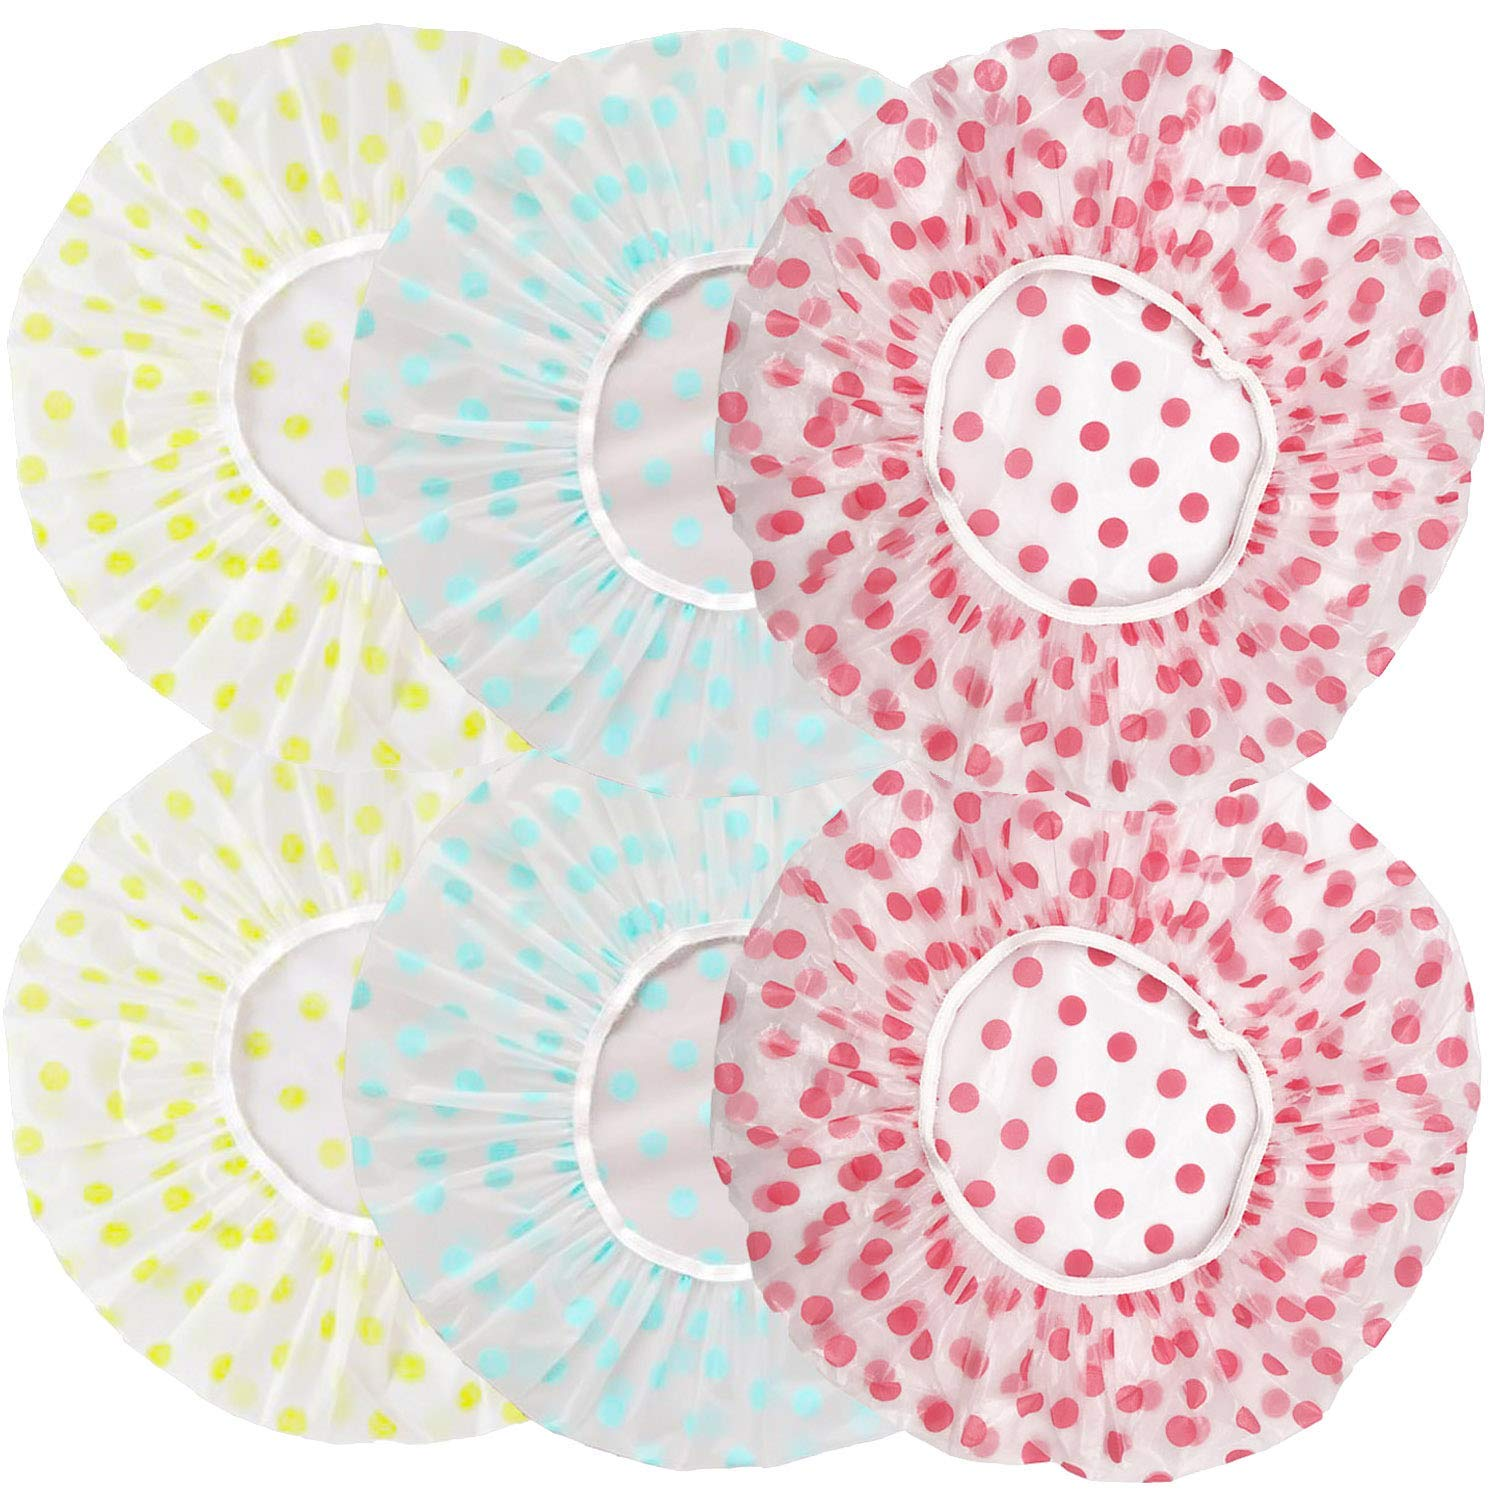 Discount mail order 6 PCS Shower Limited time for free shipping Caps Elastic Hair Cap Bathing Waterproof Reusable